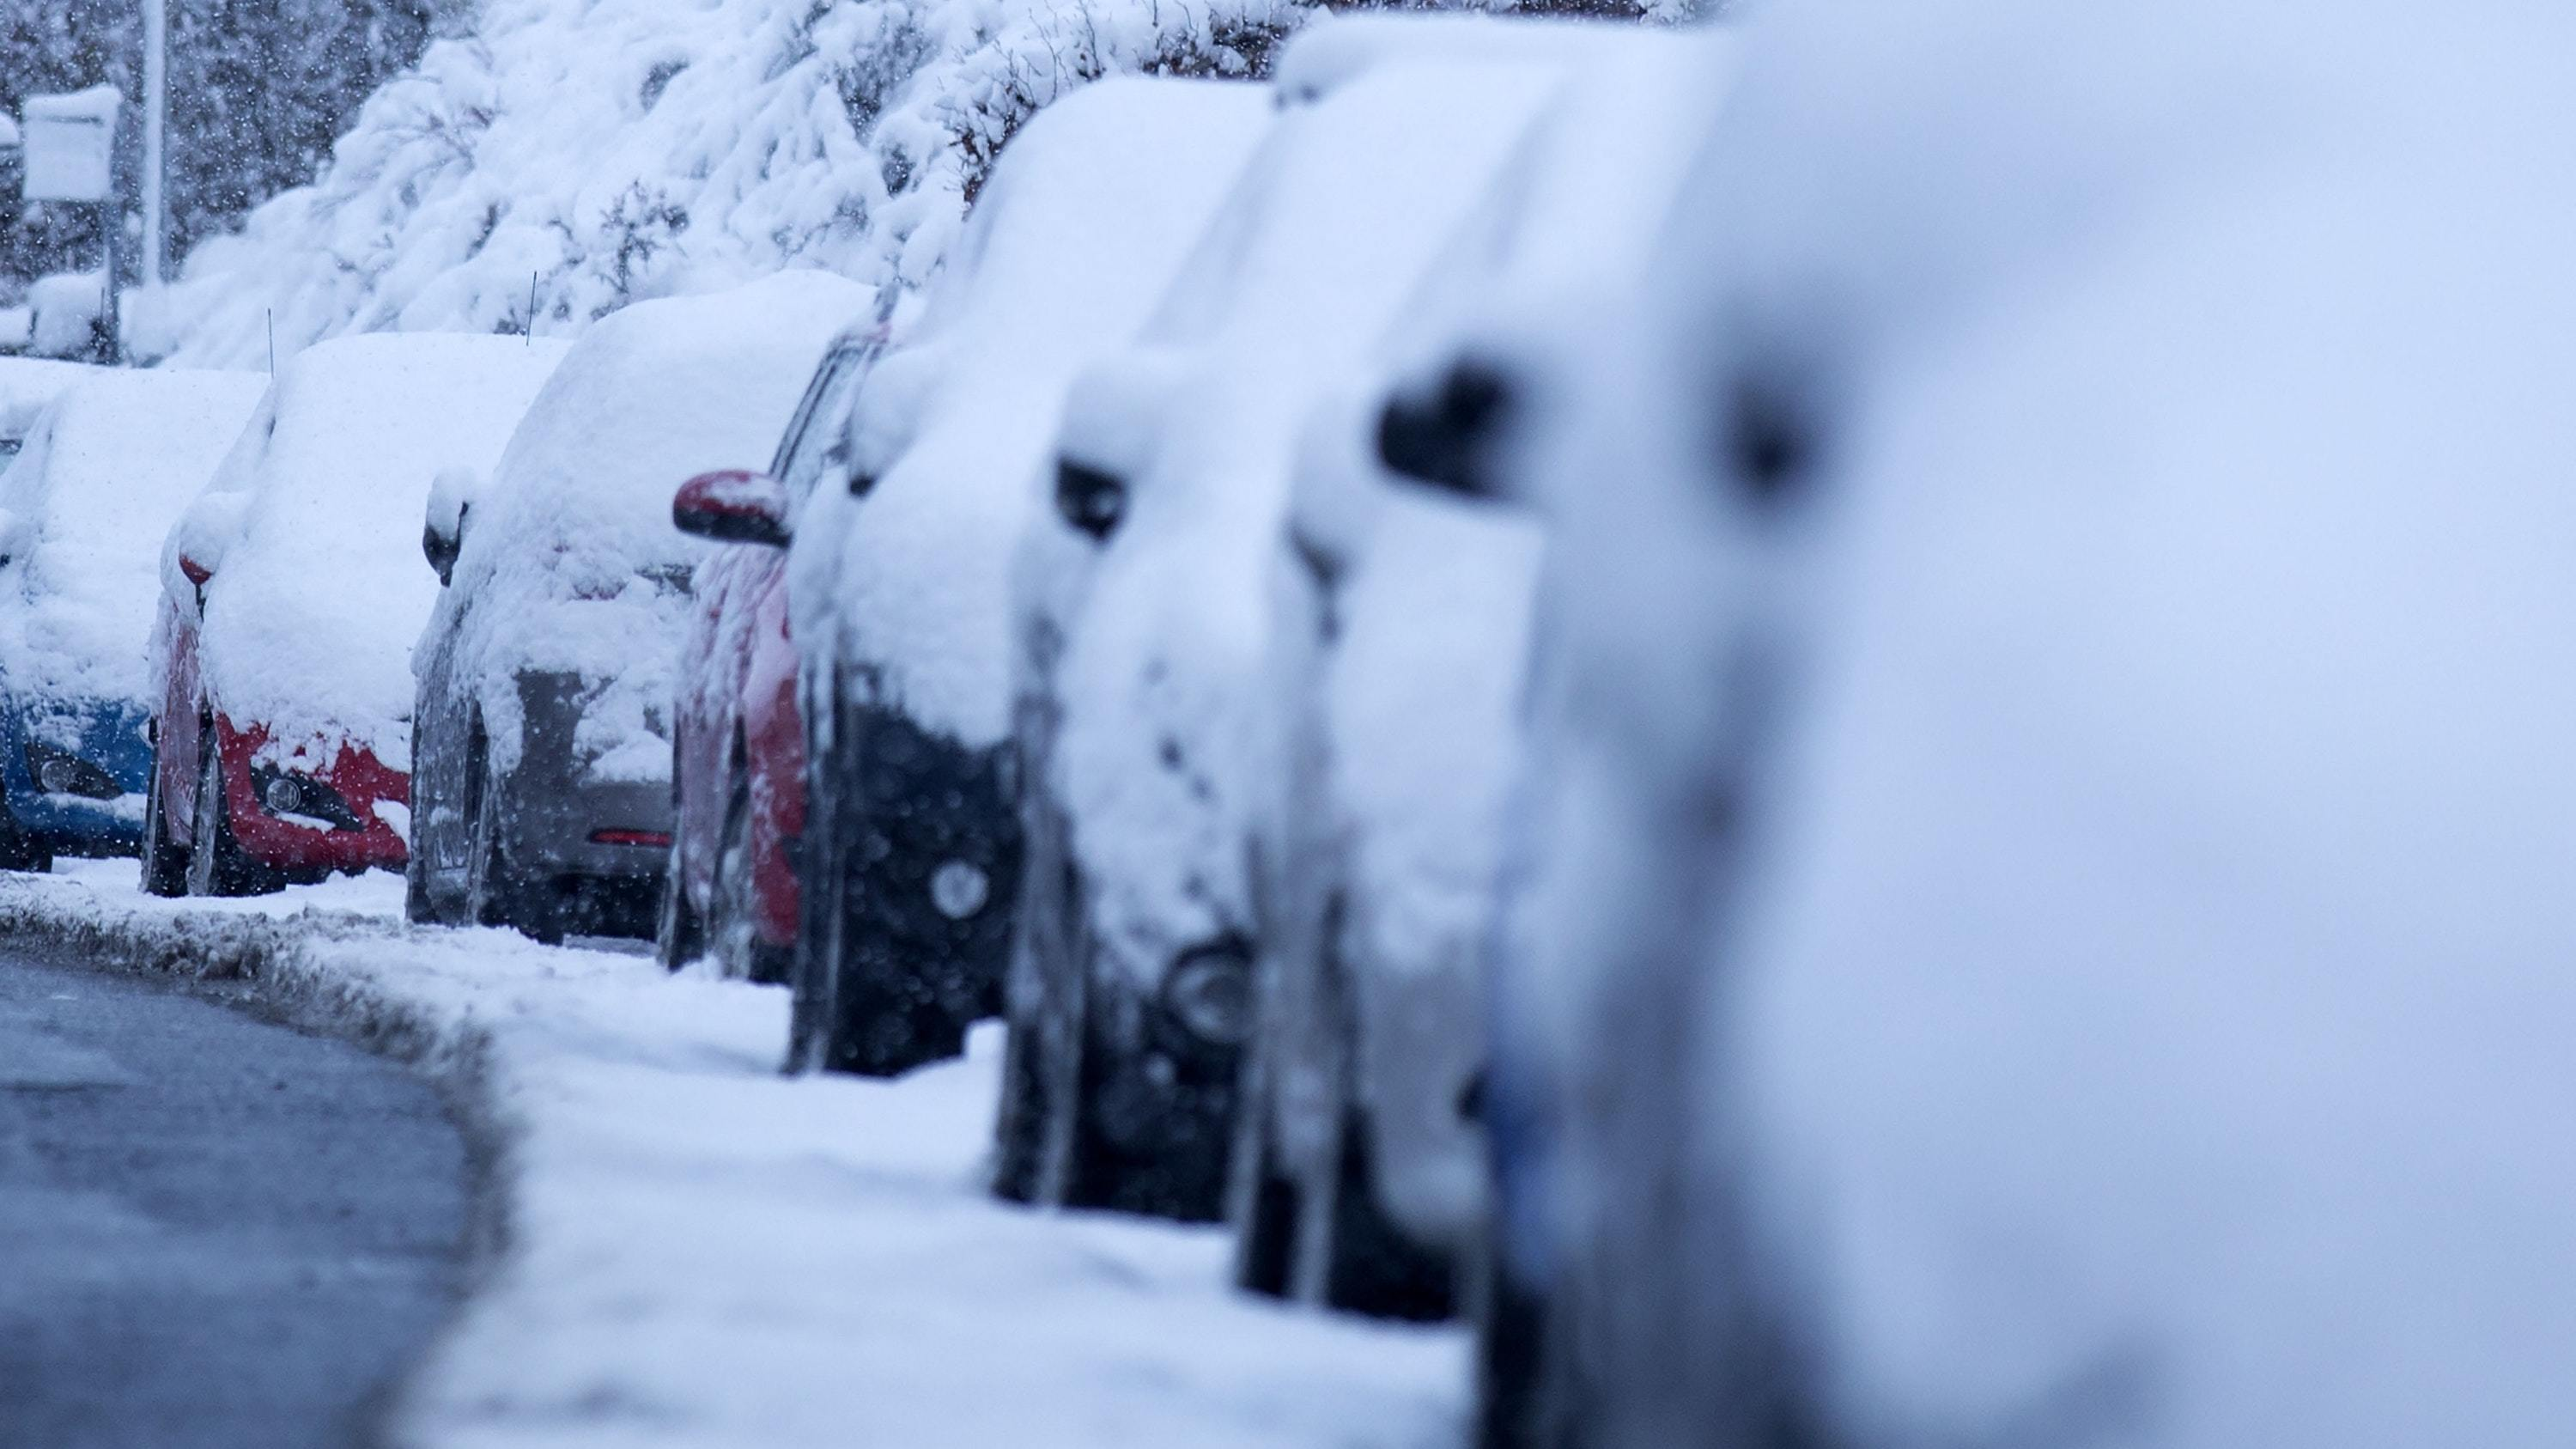 Cars covered with snow amid cold weather (David Cheskin/PA)